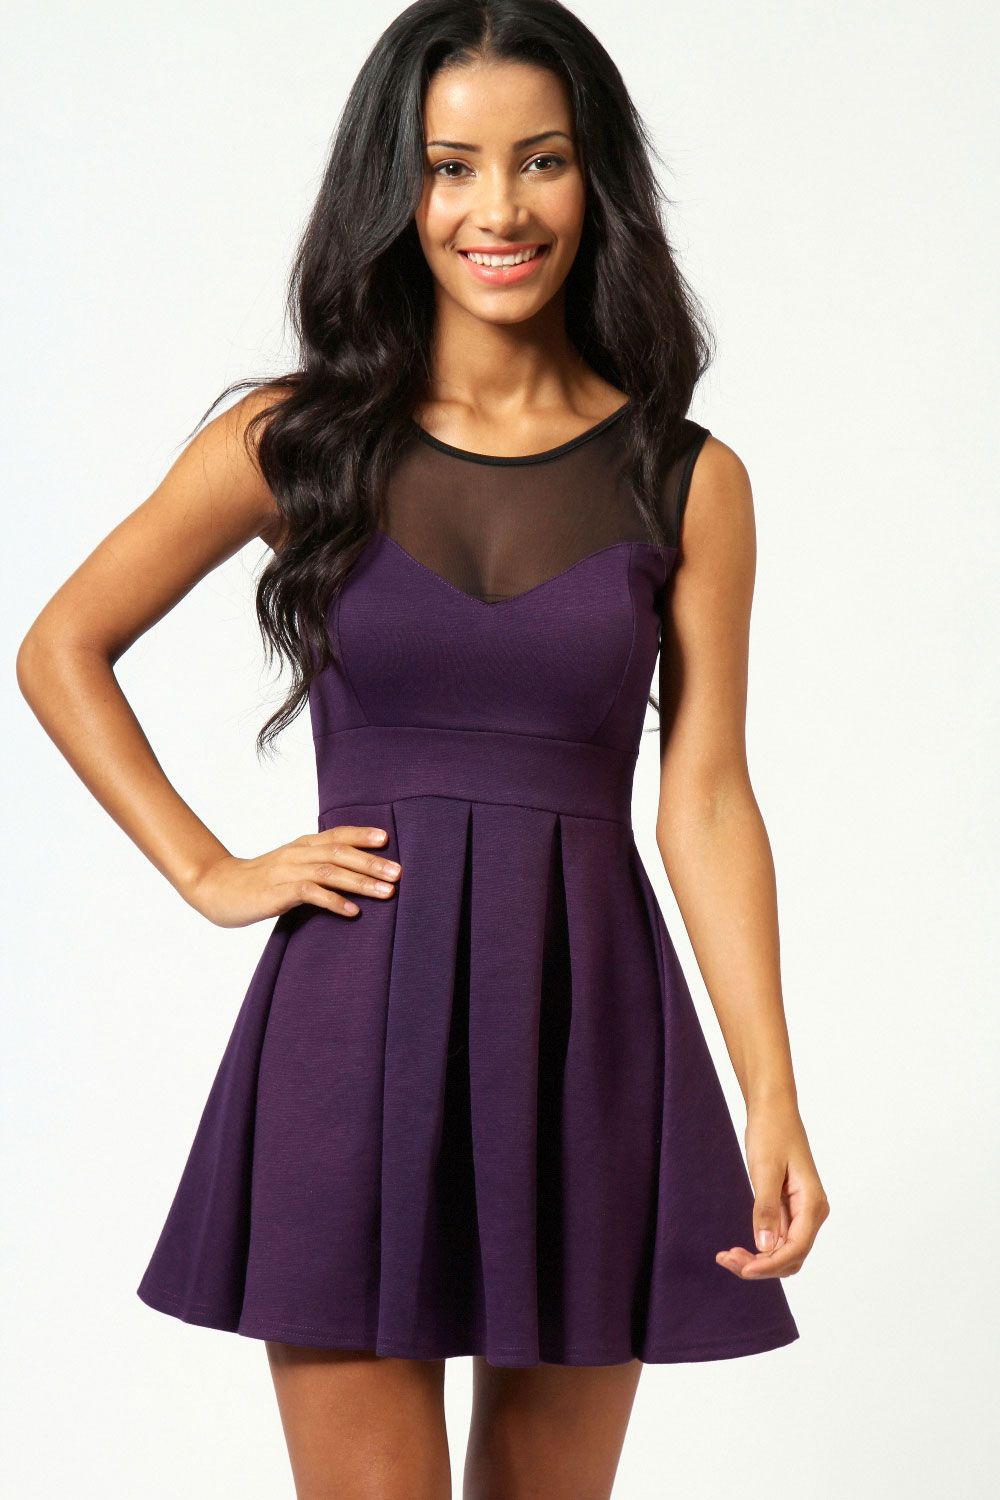 Cherry Skater Dress | Tes, Athletic wear and The mesh